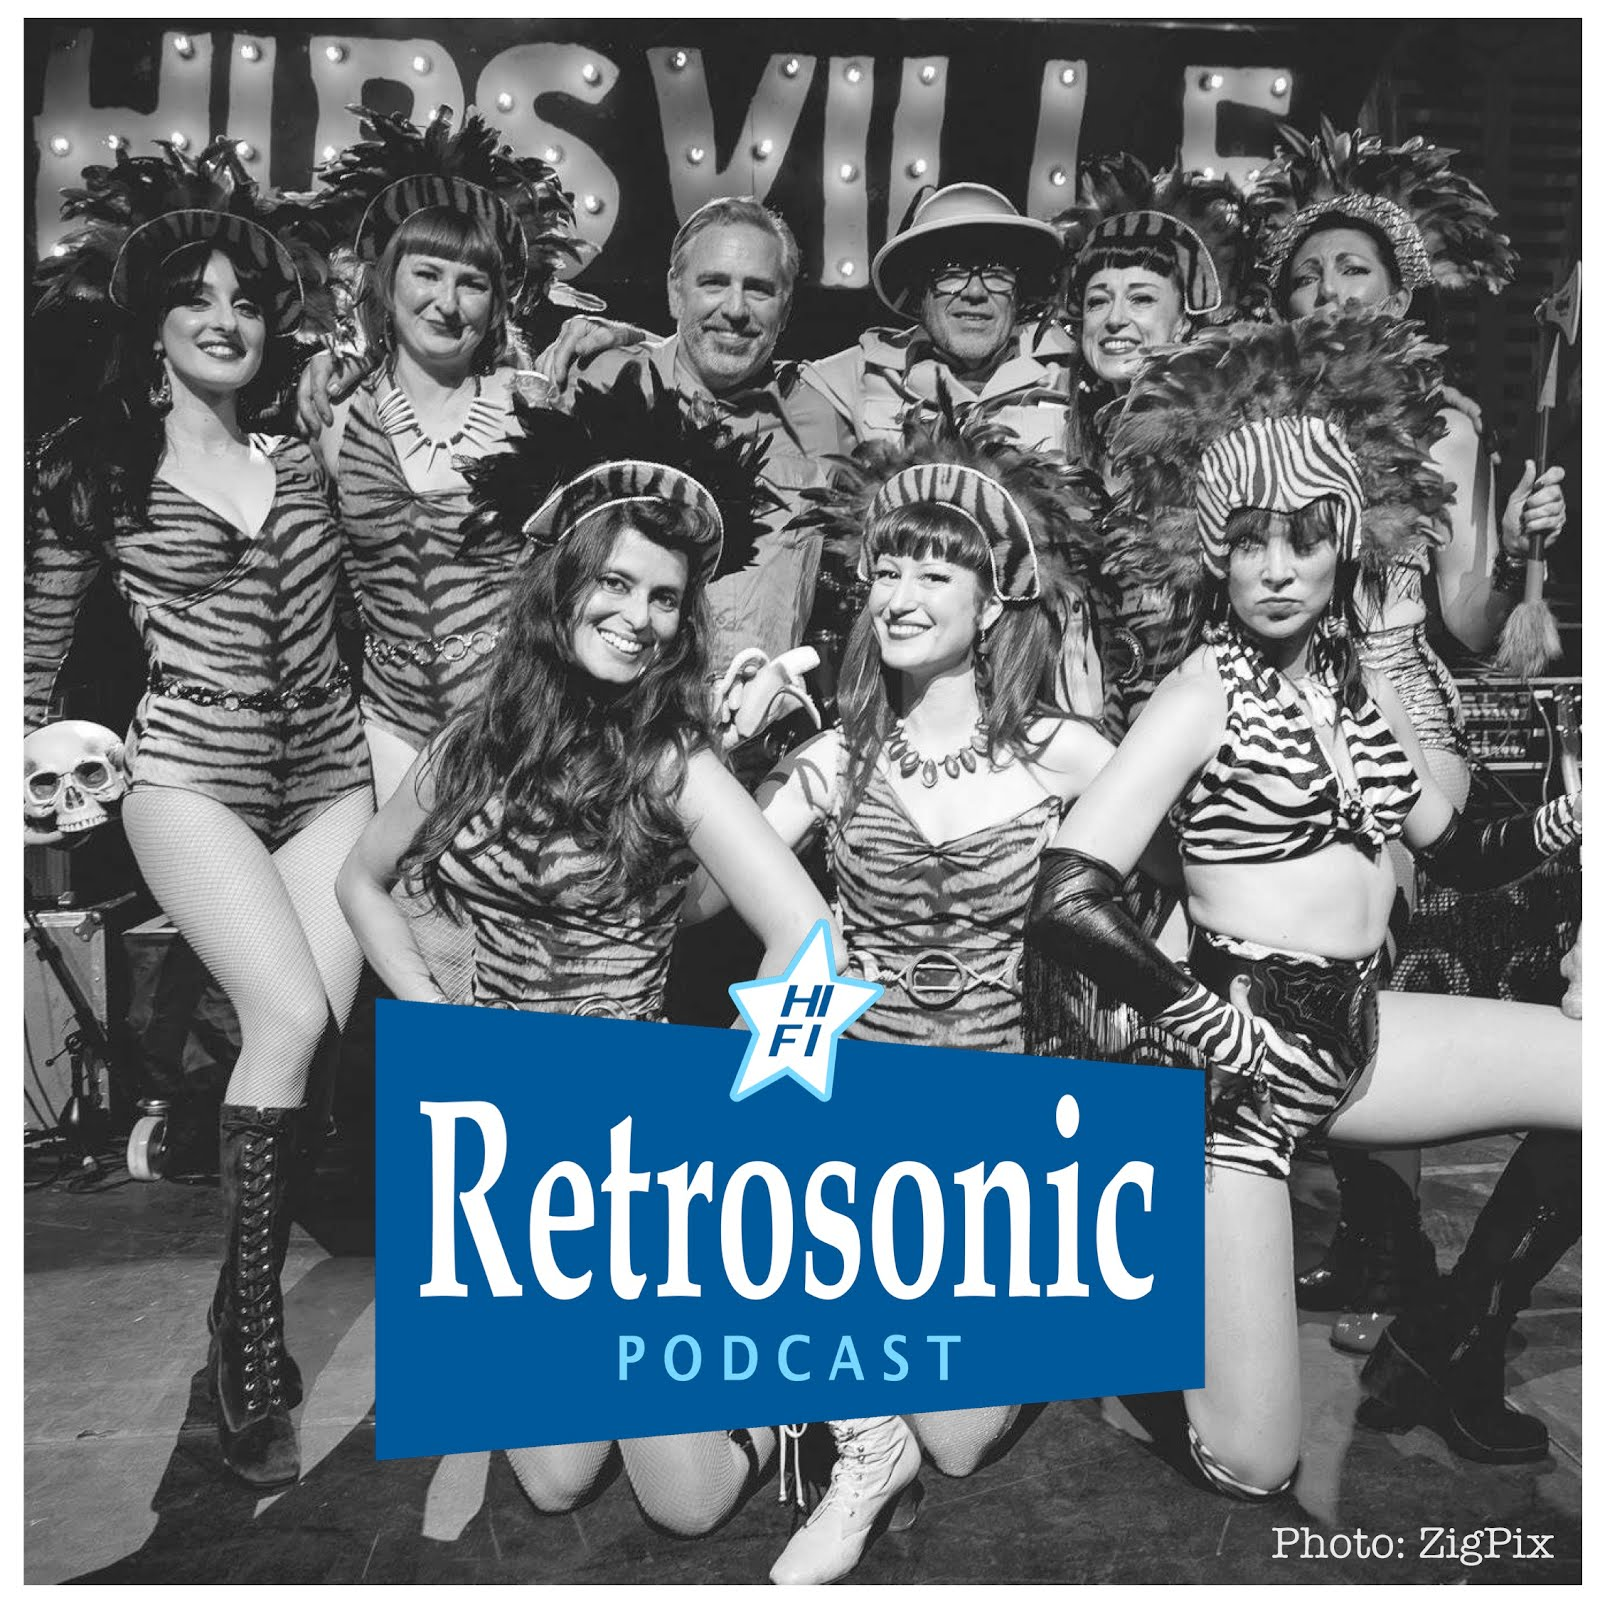 Retrosonic Podcast Episode 31: Hipsville 2018 Special